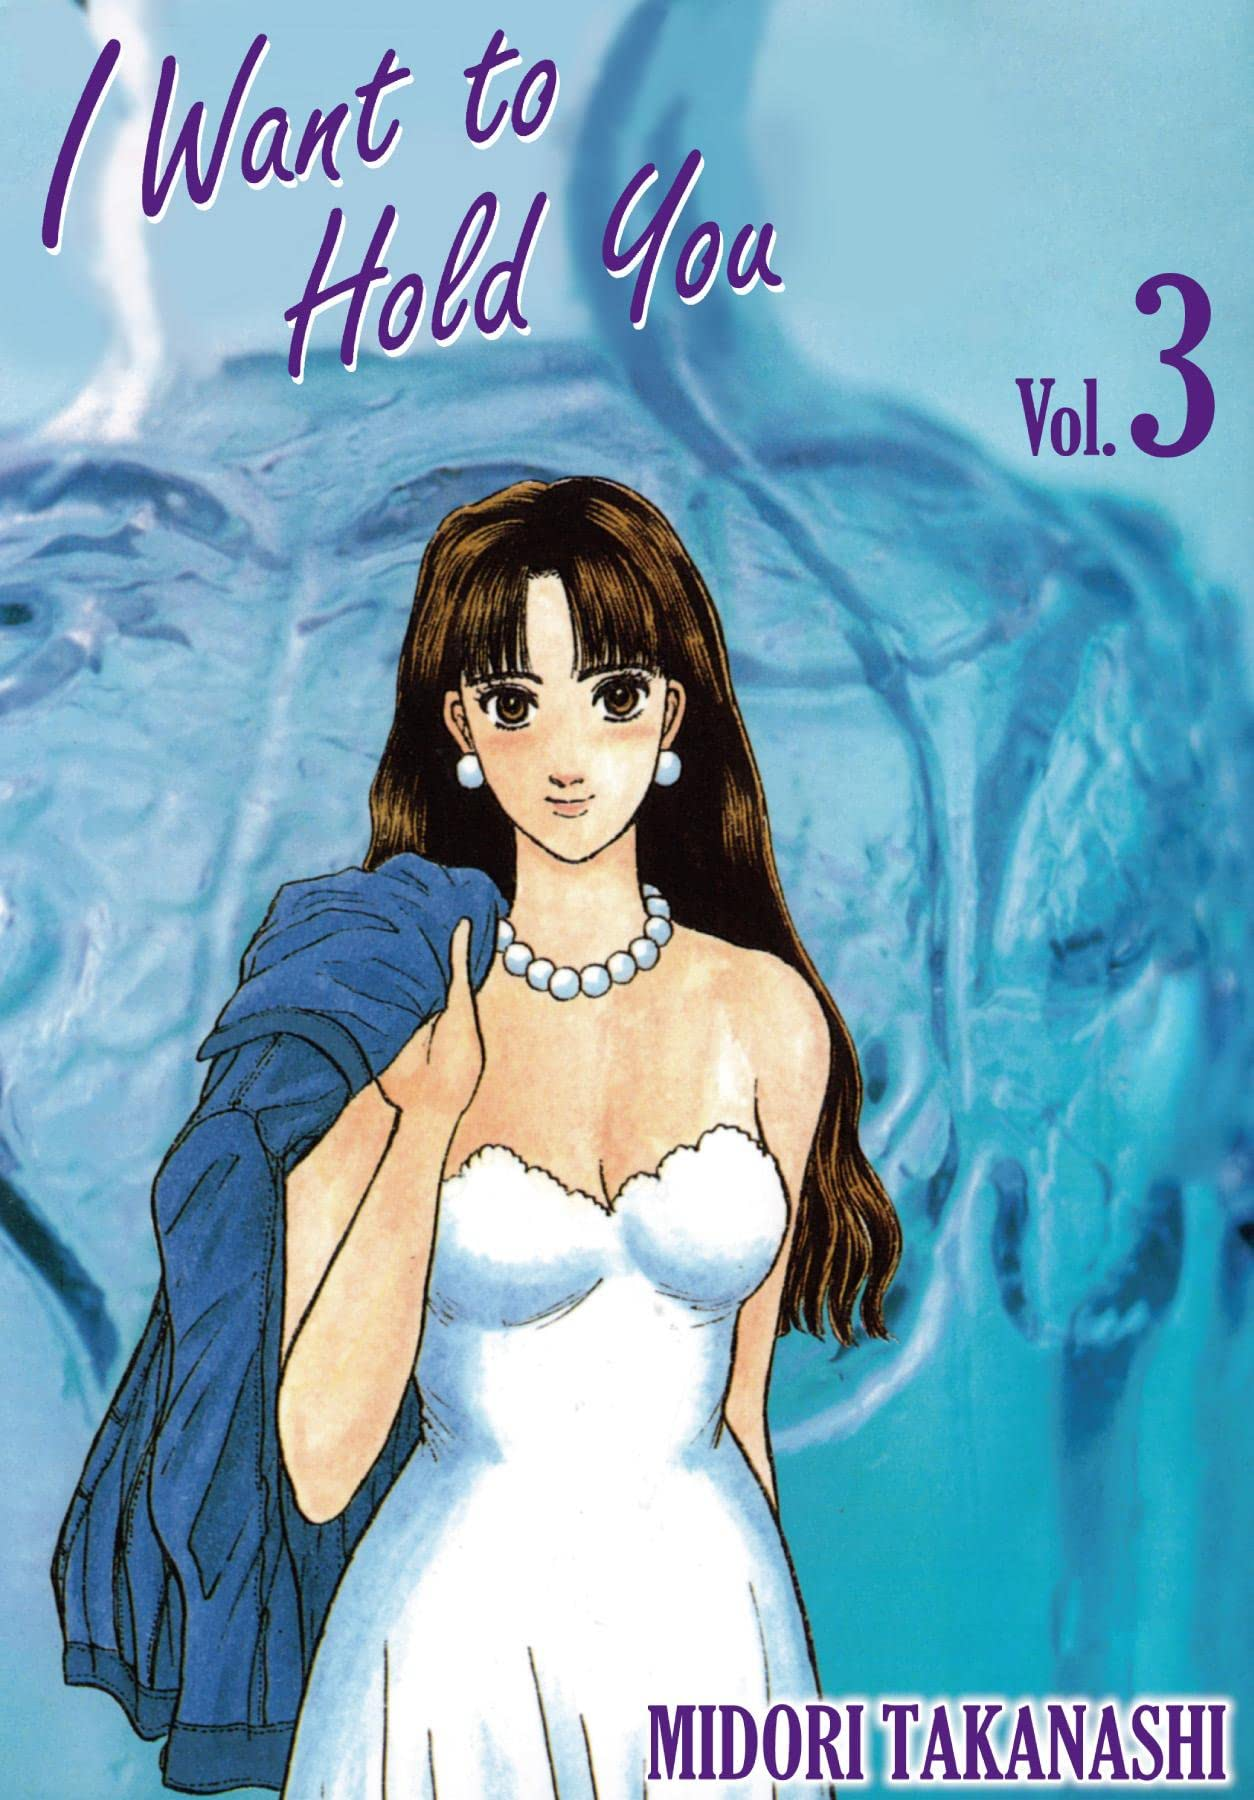 I WANT TO HOLD YOU Vol. 3